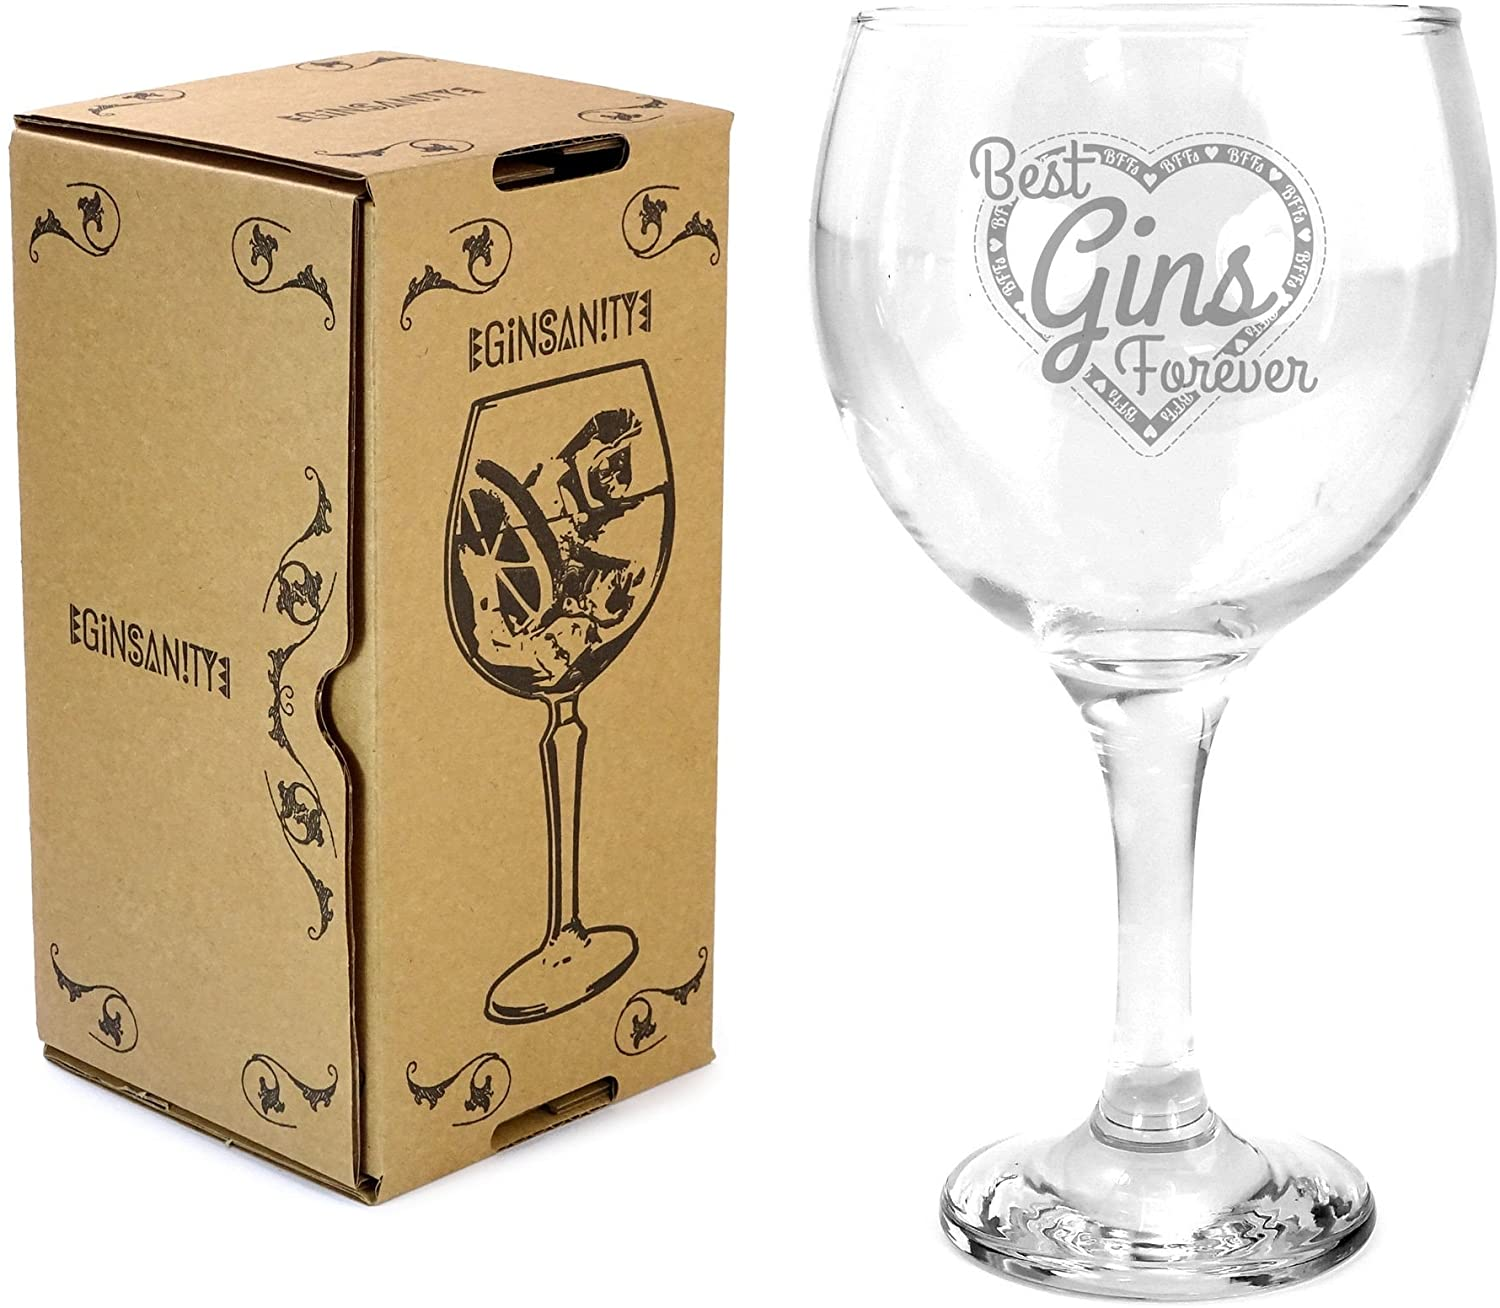 Ginsanity 22oz (645ml) Gin & Tonic Copa Balloon Cocktail Glass & Giftbox - Best Gins Forever!